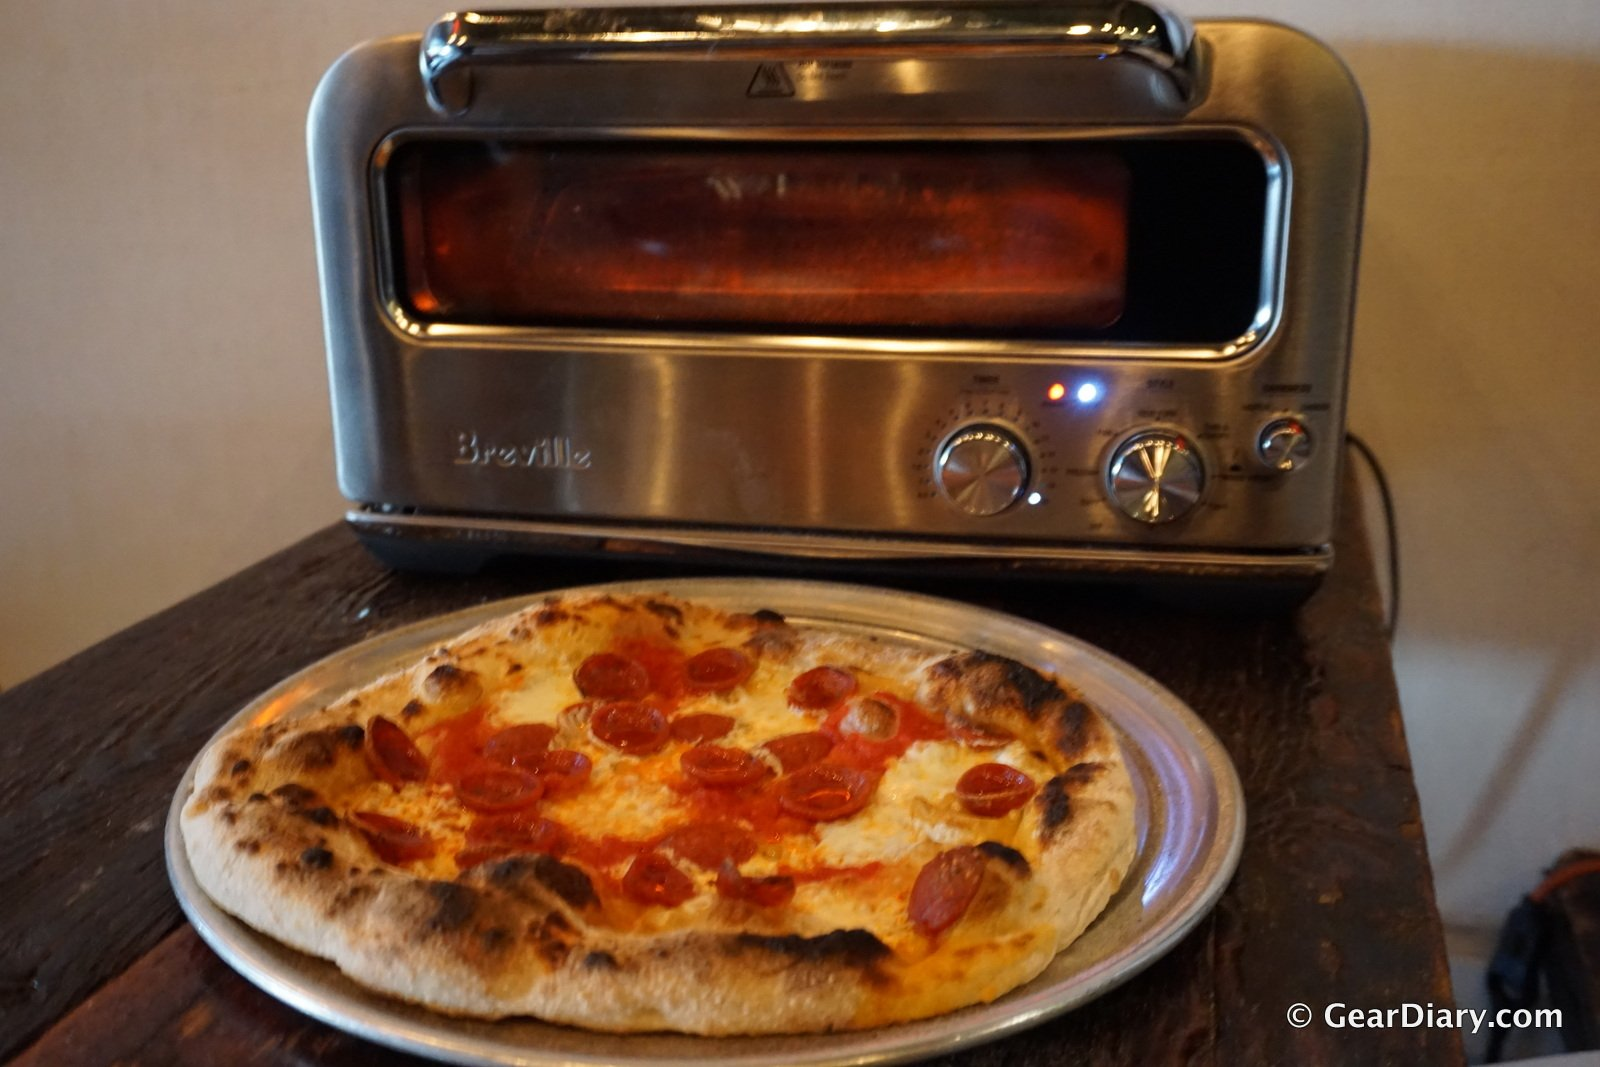 Breville Smart Oven Pizzaiolo Hands On Impressions